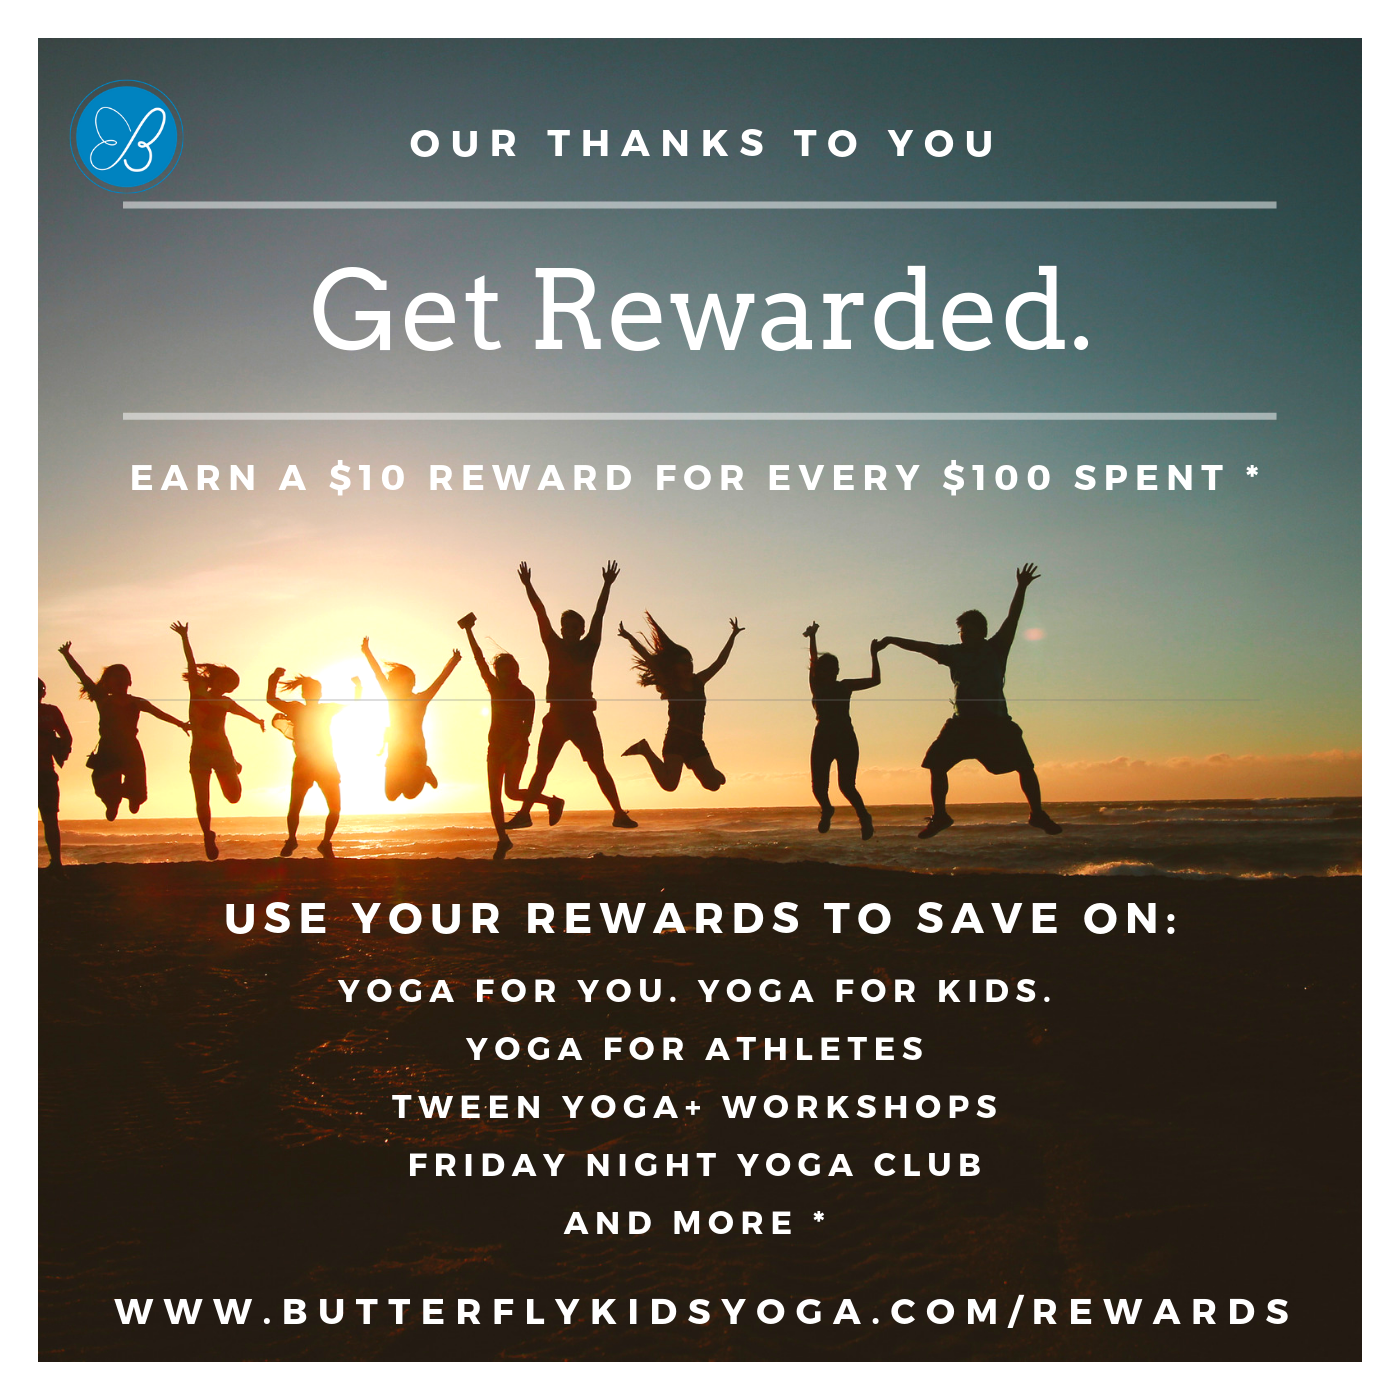 Butterfly Kids Yoga Get Rewarded.png